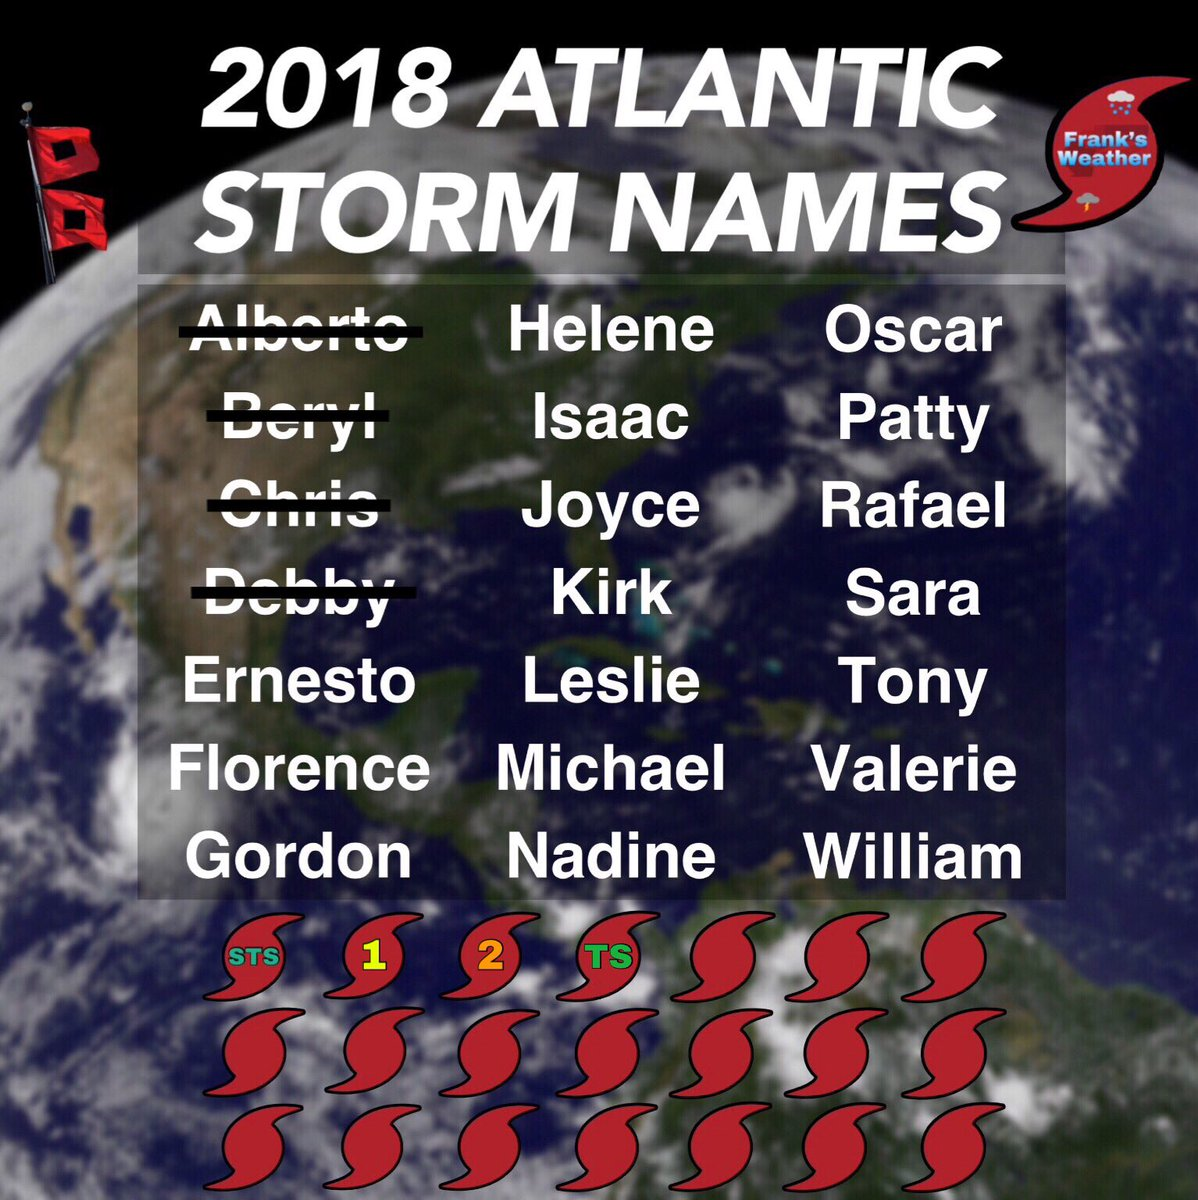 Current Atlantic Hurricane Season 2018 Statistics:   Names Used: 4   Strongest Storm: Chris at CAT 2 (105MPH)  Weakest Storm: Debby at Tropical Storm Status (50MPH)   Longest Surviving: Chris at 6 DAYS (July 6-12)   27 DAYS until the peak of the season (SEP. 10)  #HurricaneSeason<br>http://pic.twitter.com/SOi7FguPy8